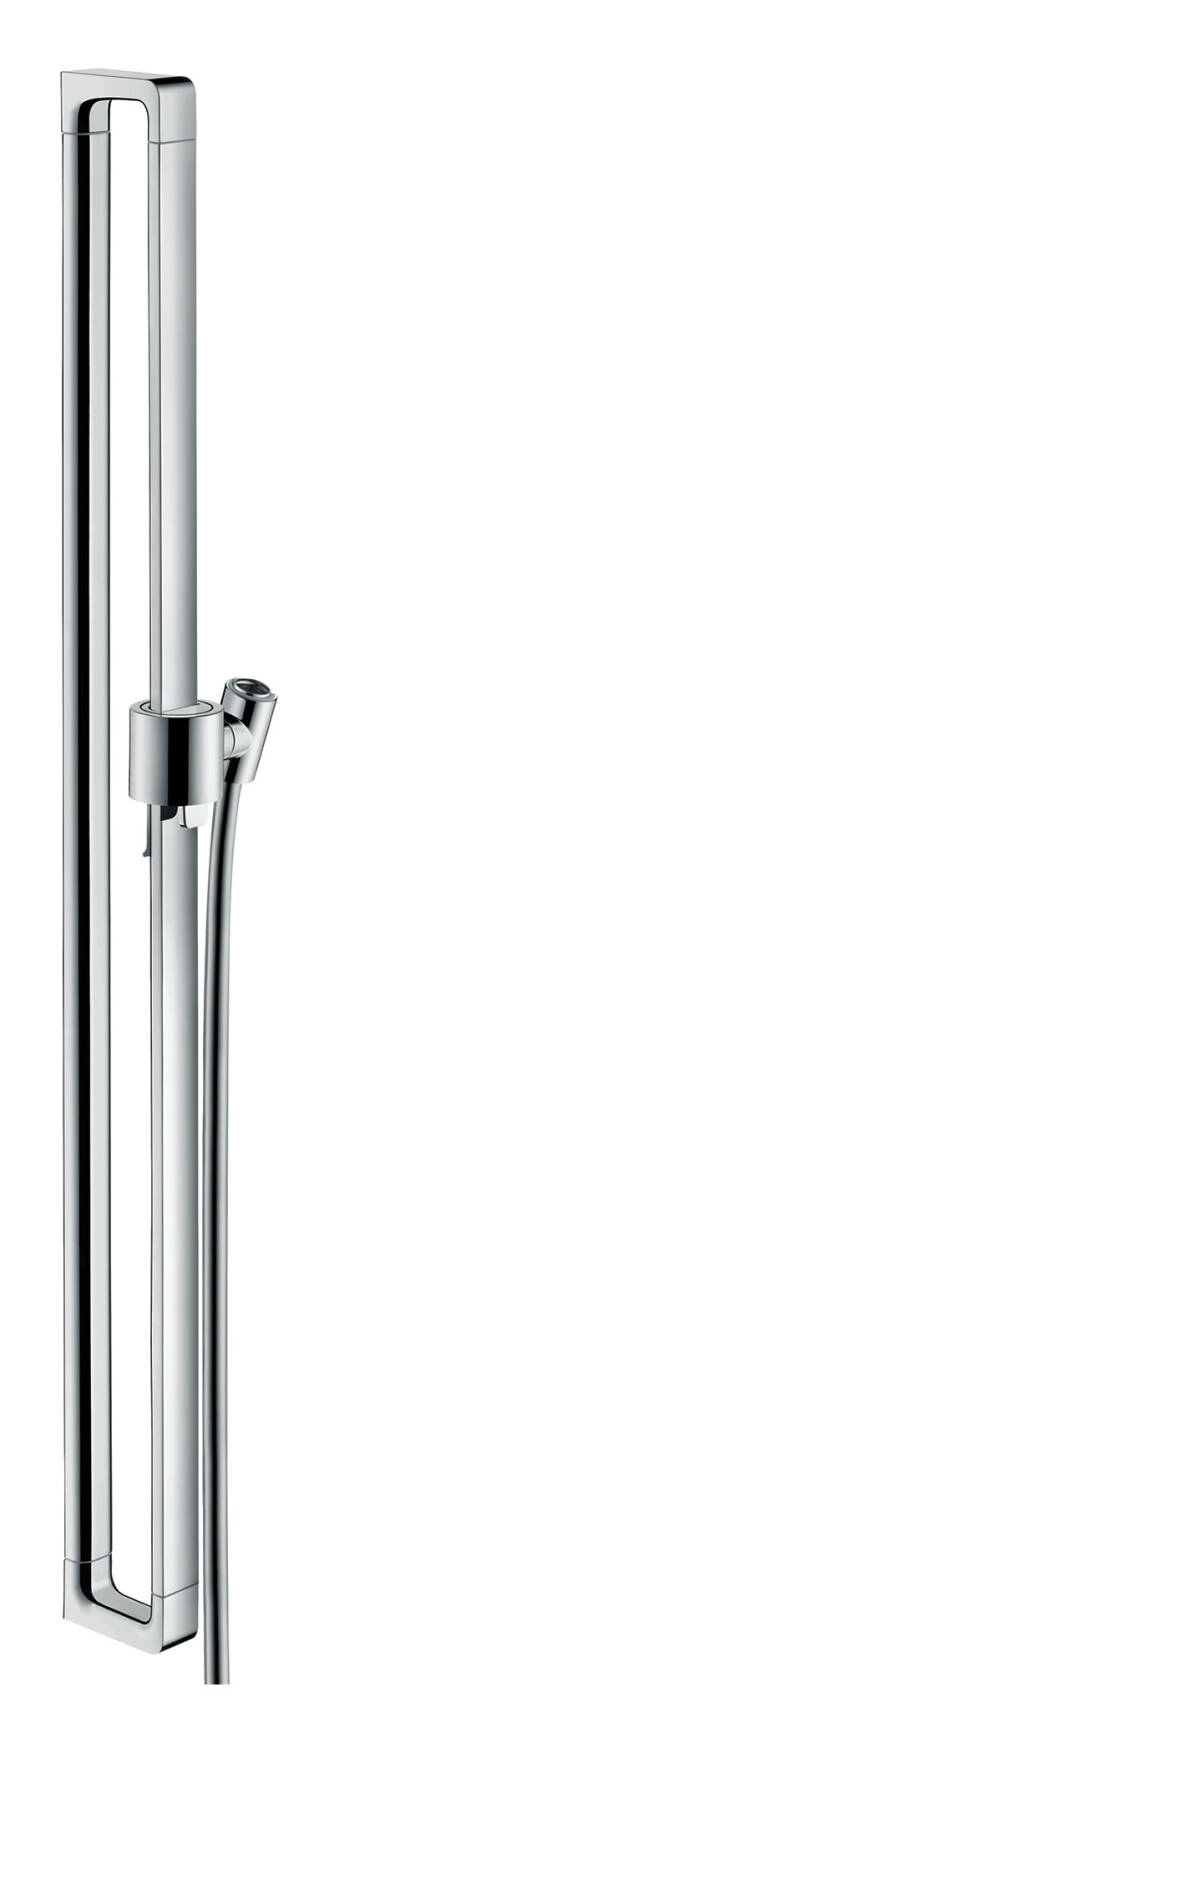 Shower bar 0.90 m, Polished Gold Optic, 36736990